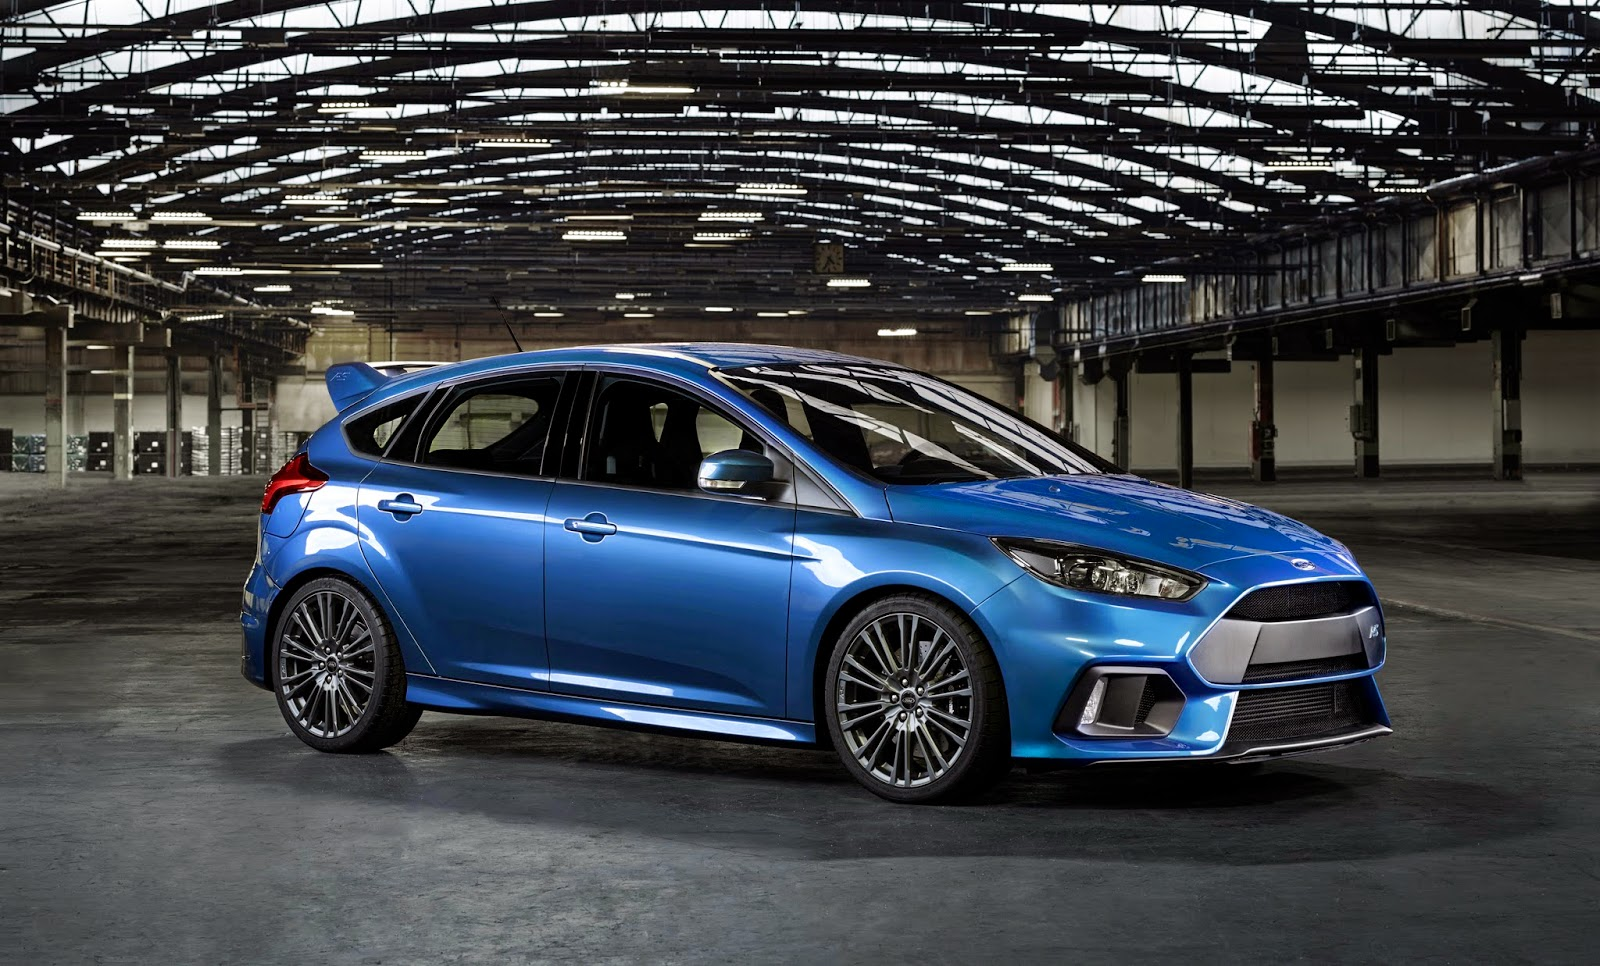 2016 focus rs vs 2015 civic type r w poll carscoops. Black Bedroom Furniture Sets. Home Design Ideas